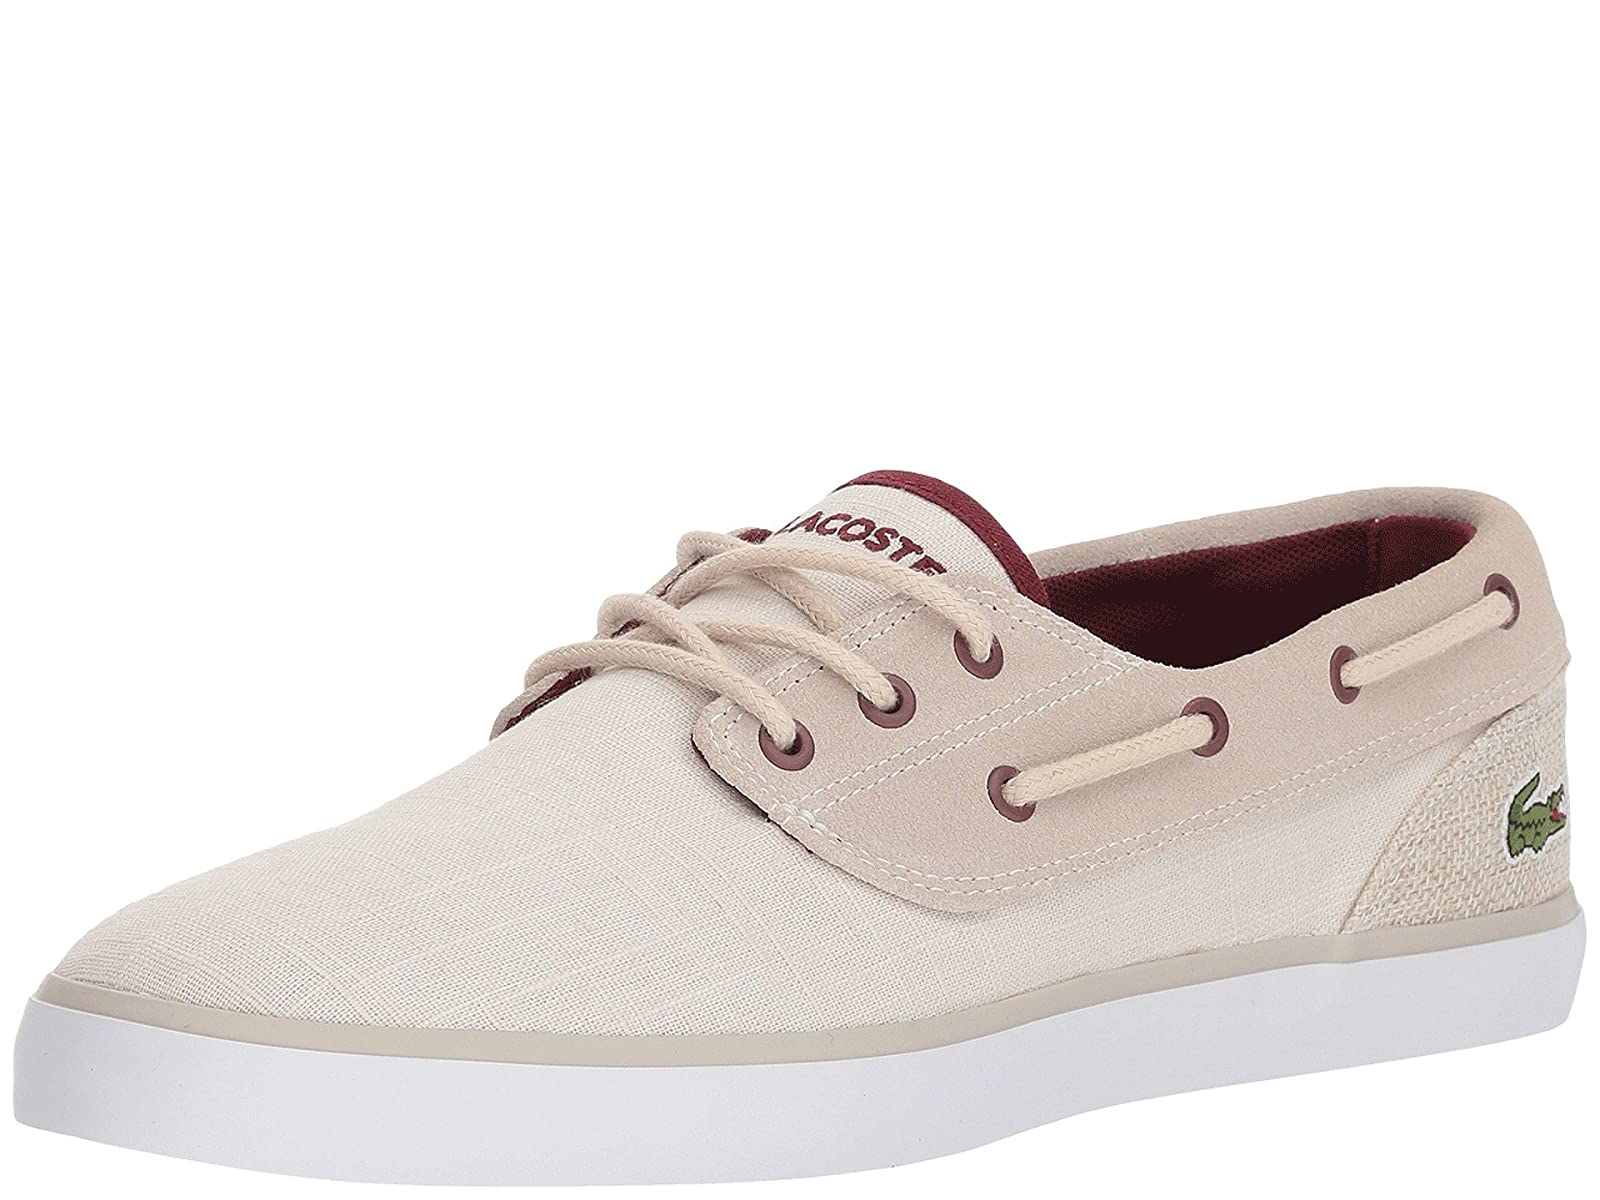 Lacoste Jouer Deck 218 1Selling fashionable and eye-catching shoes